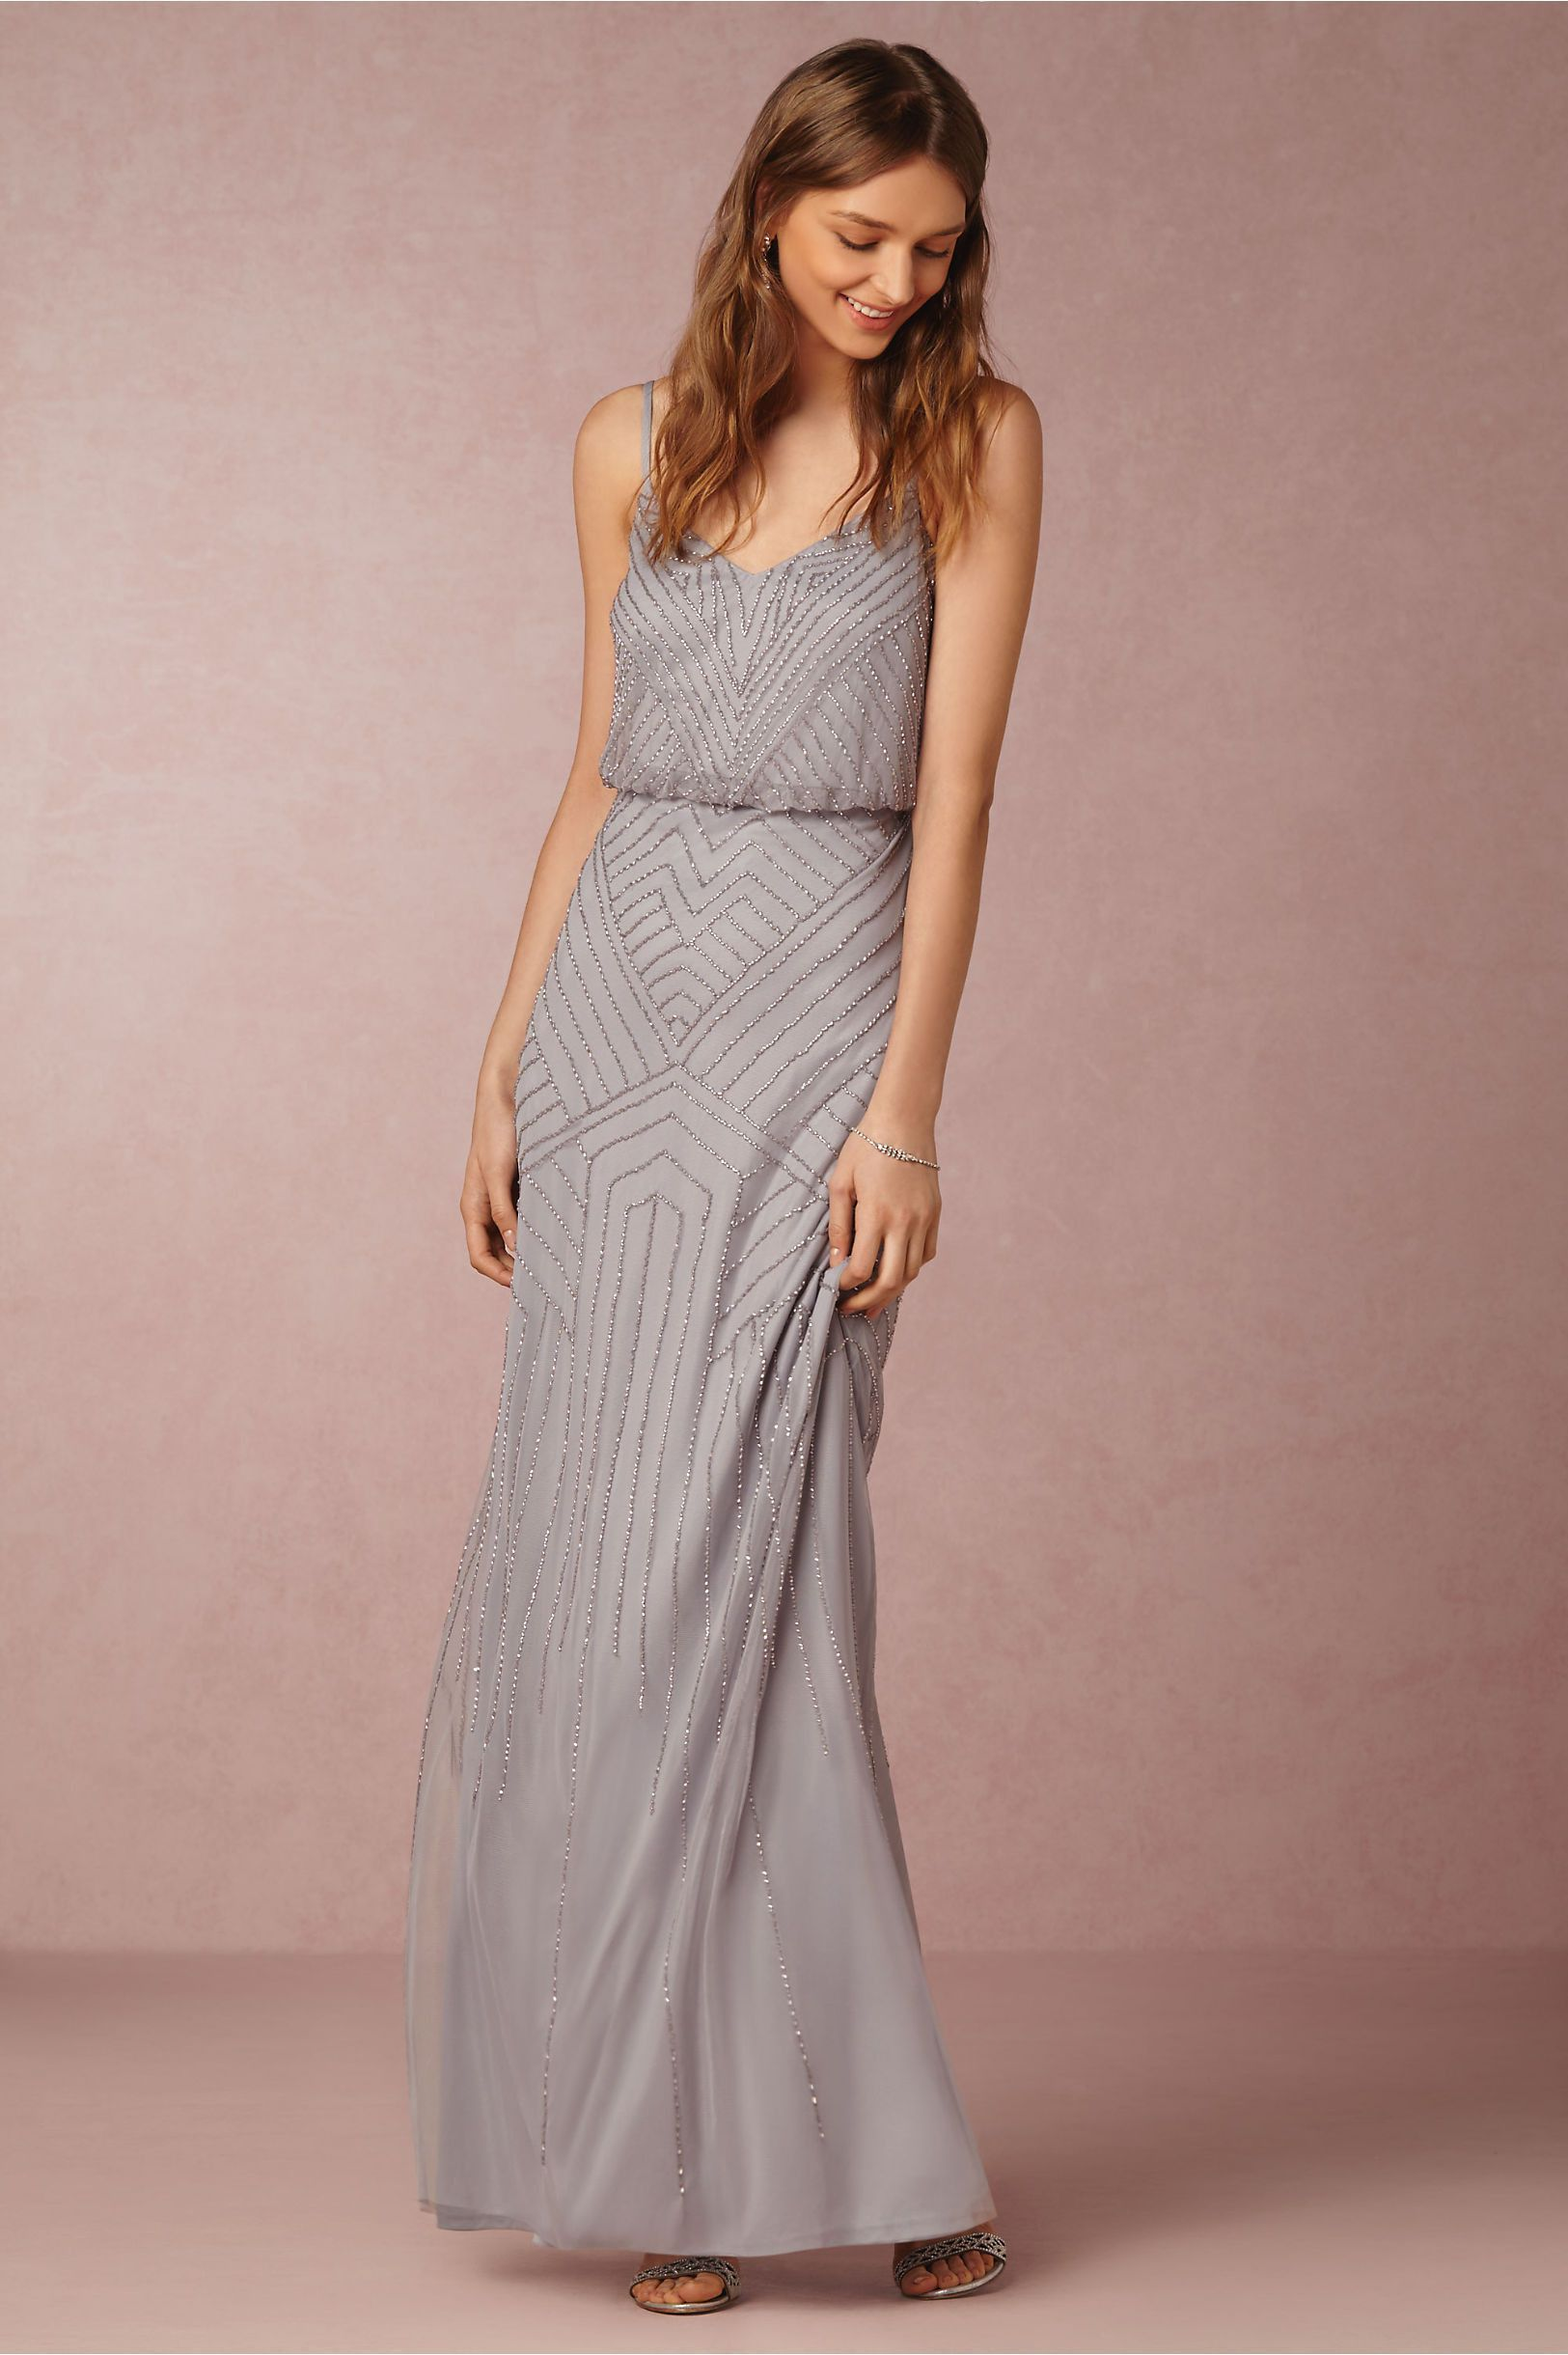 Bhldn adrianna papell sophia gown silver gray look festa